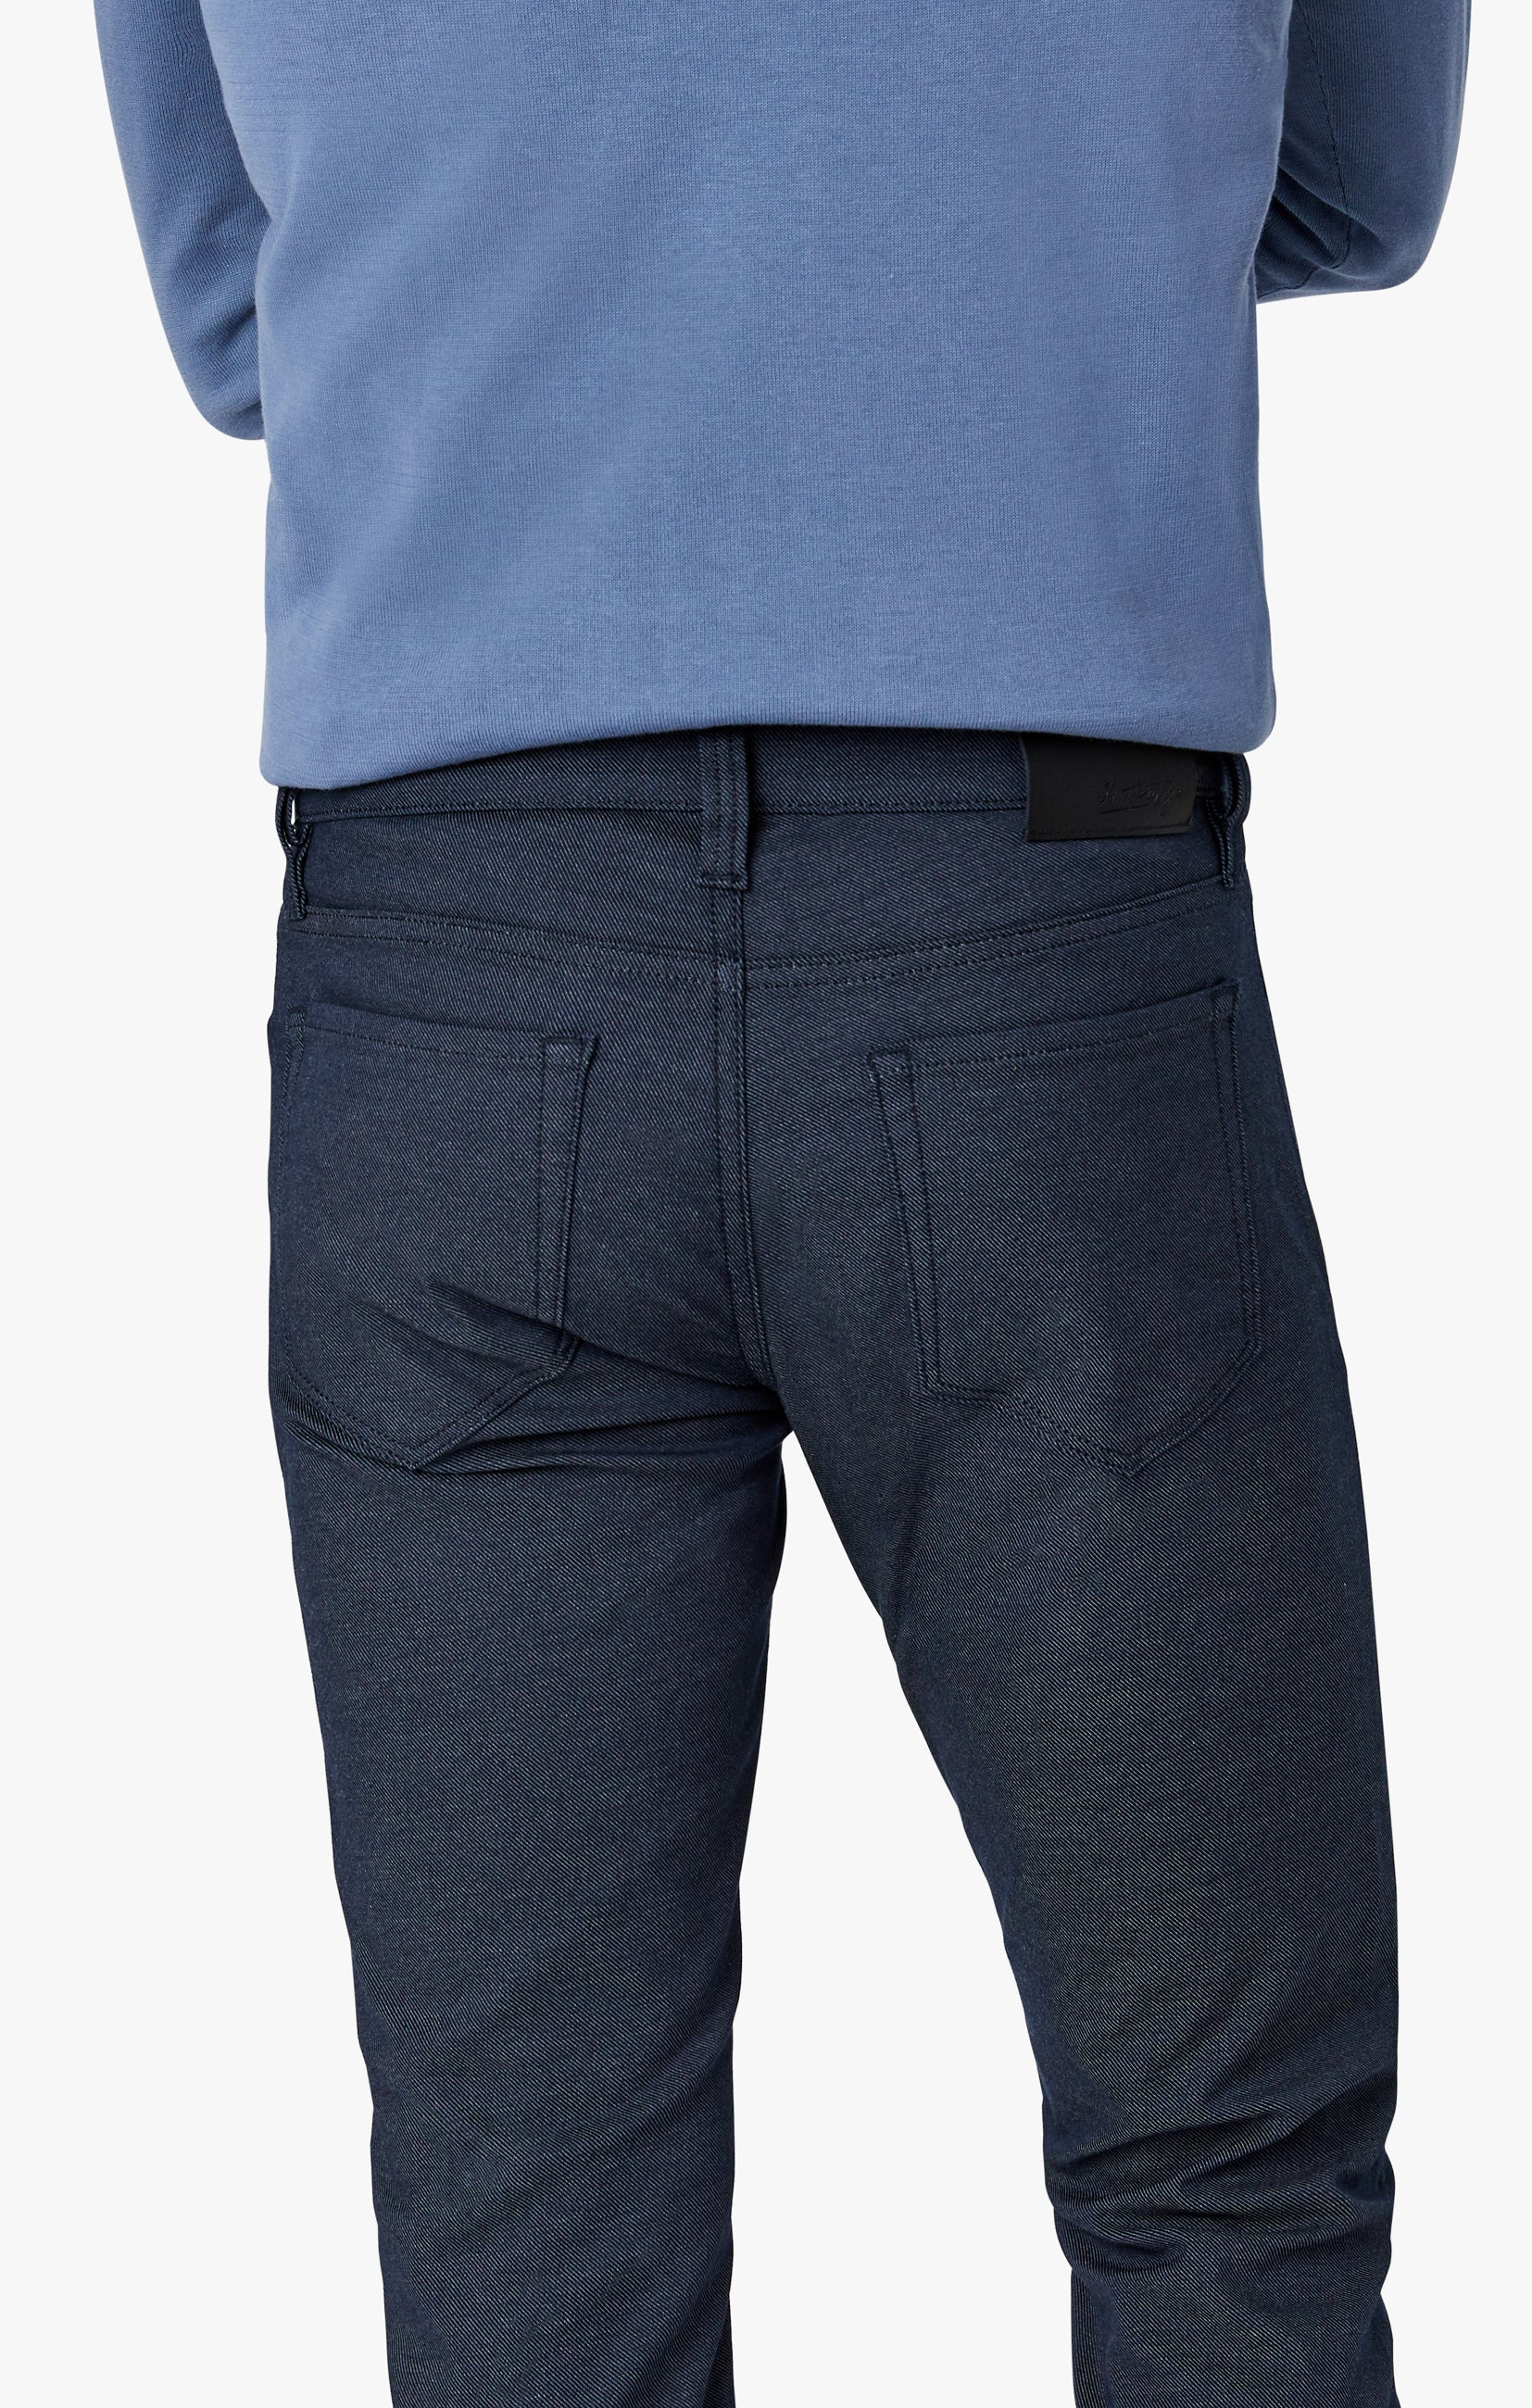 Courage Straight Leg Pants in Navy Coolmax Image 3